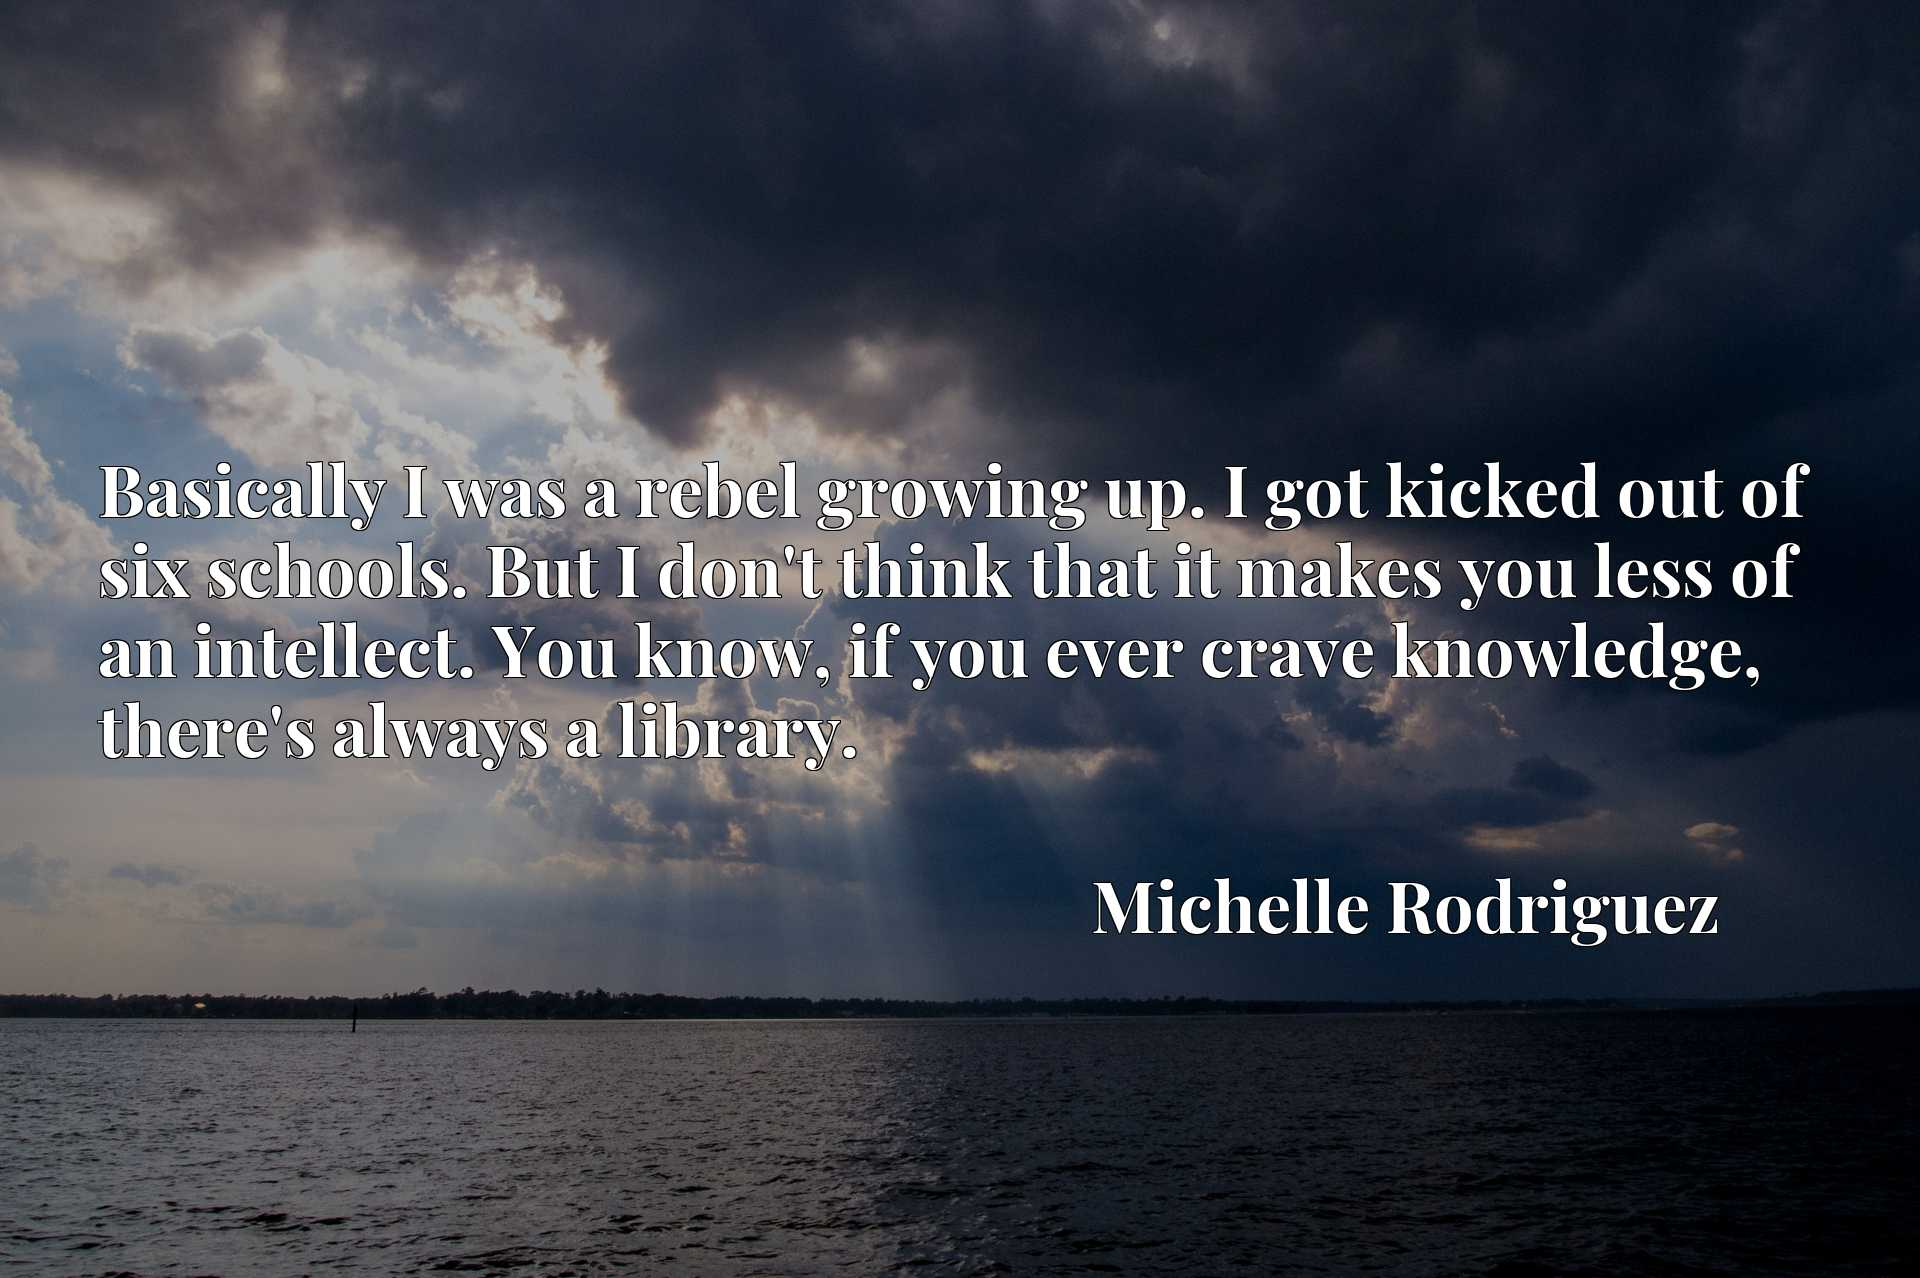 Quote Picture :Basically I was a rebel growing up. I got kicked out of six schools. But I don't think that it makes you less of an intellect. You know, if you ever crave knowledge, there's always a library.